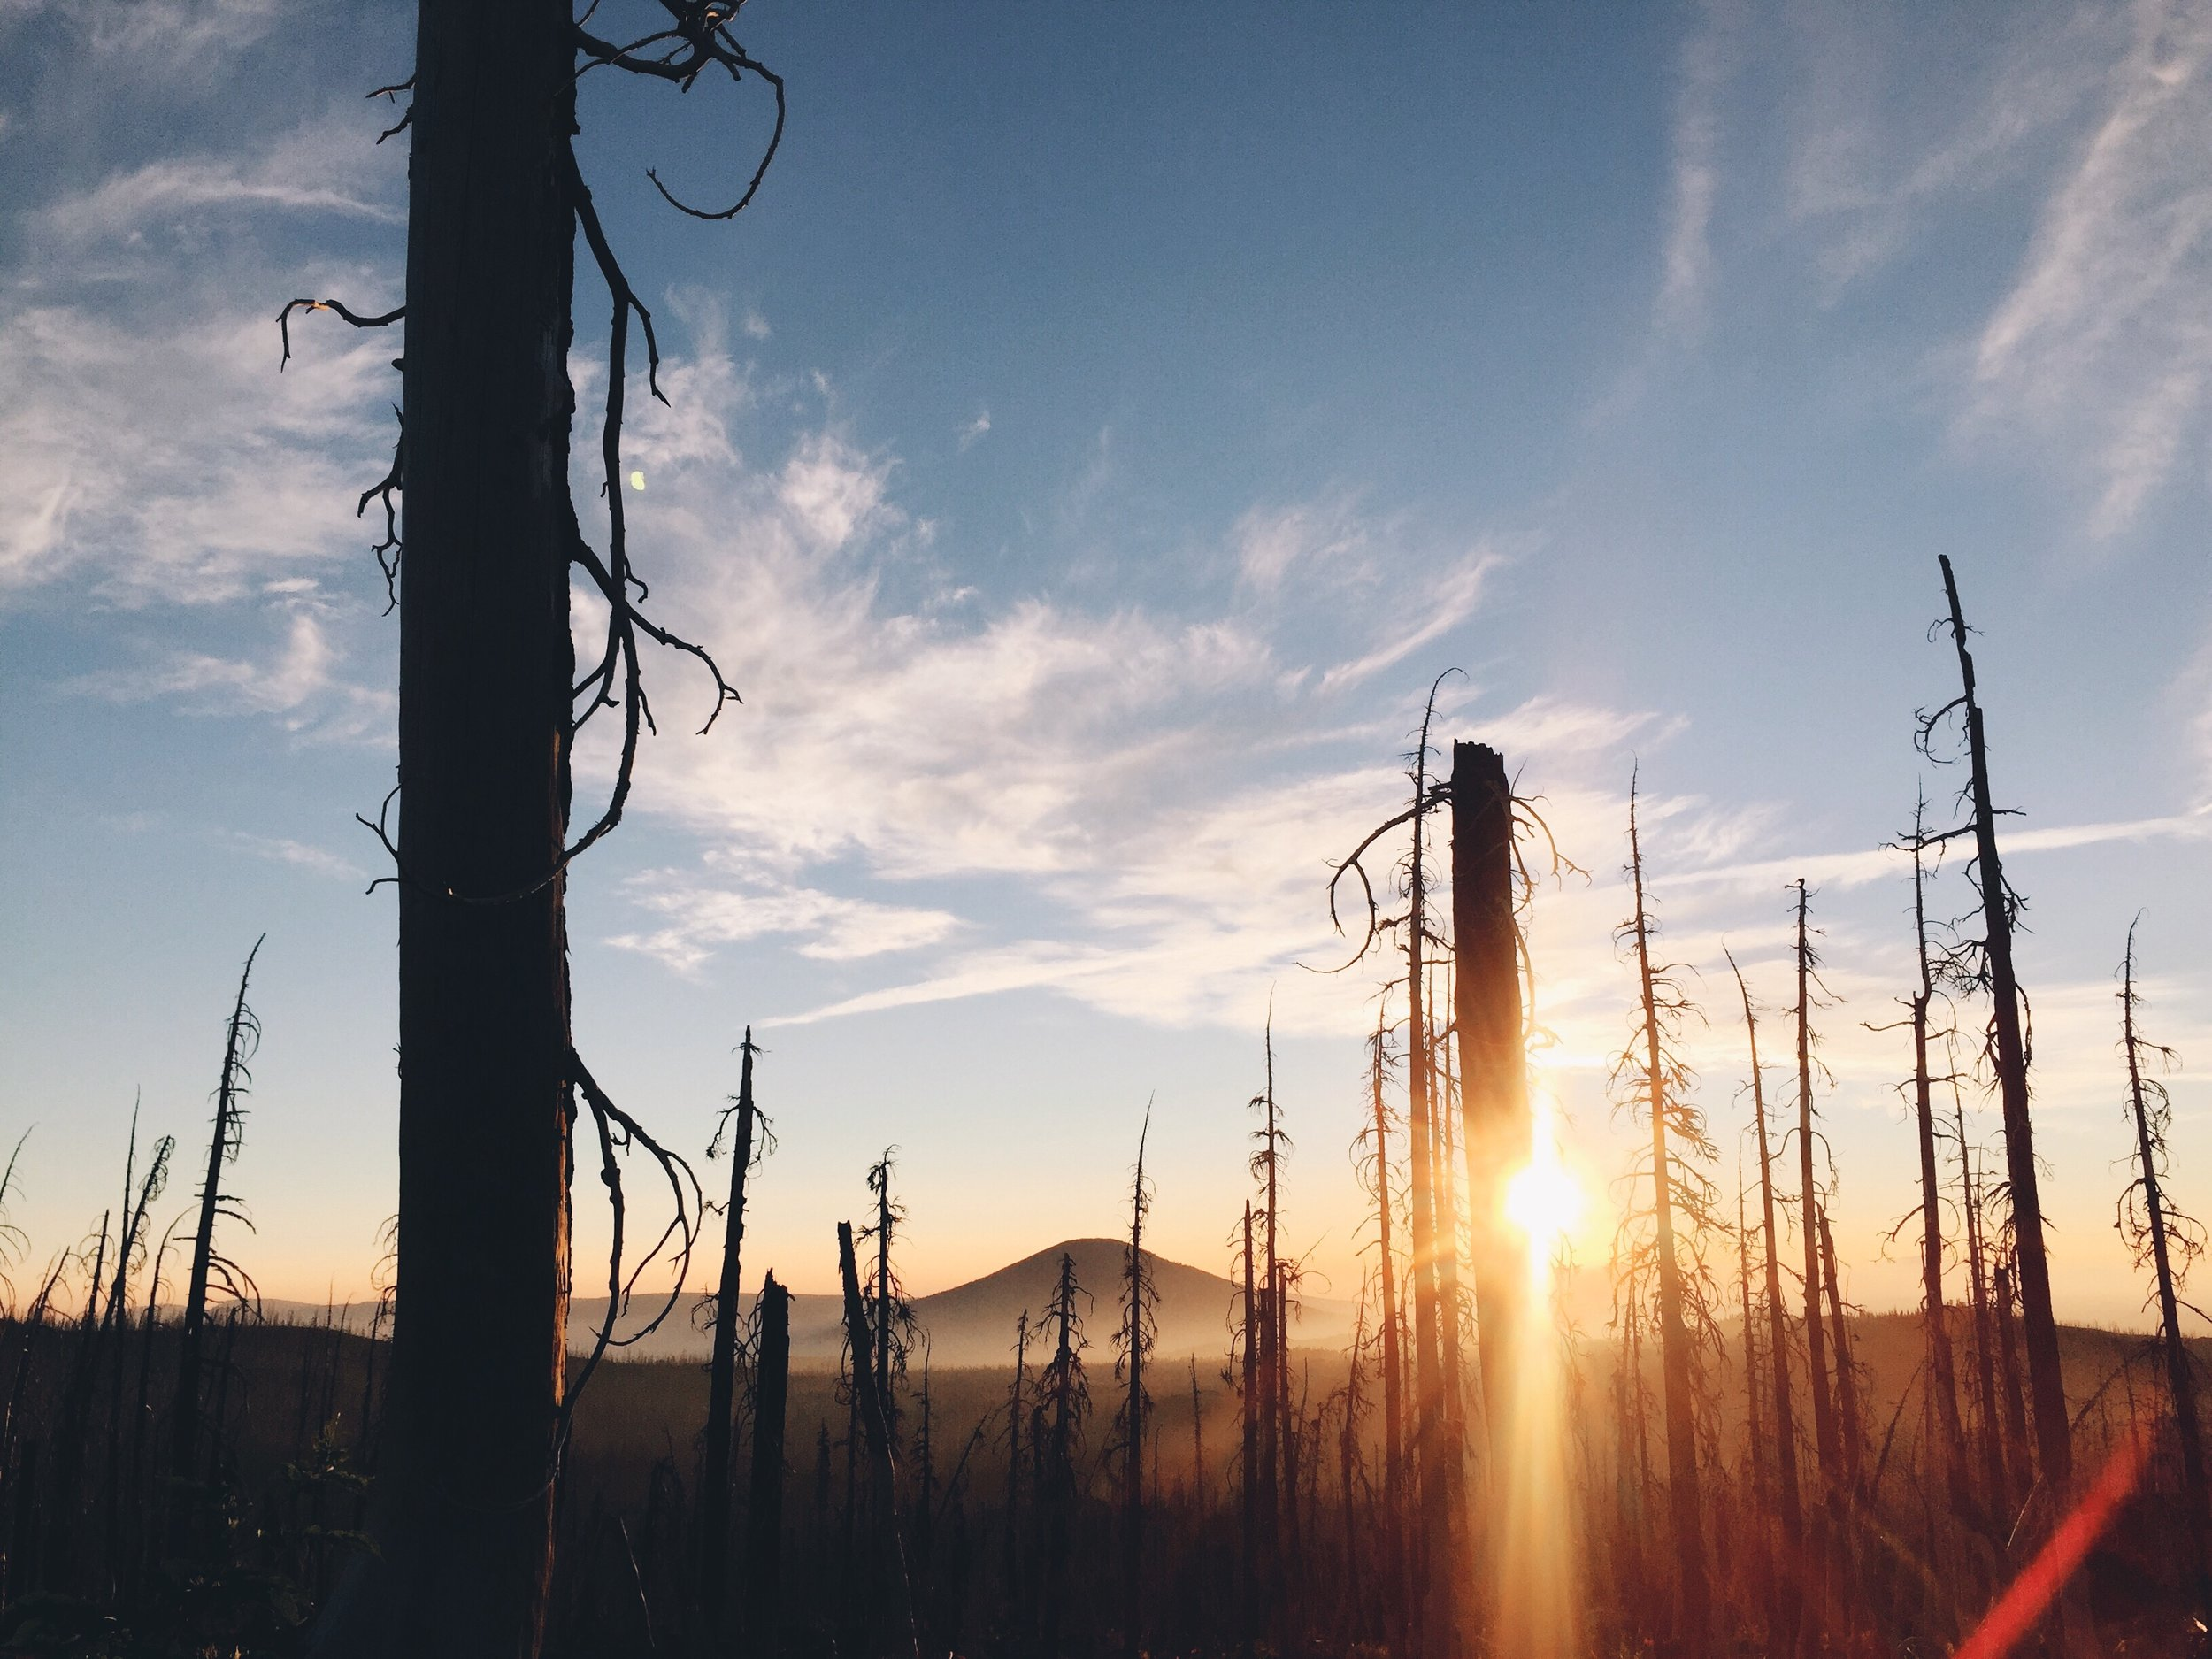 Sun coming out behind the burned trees